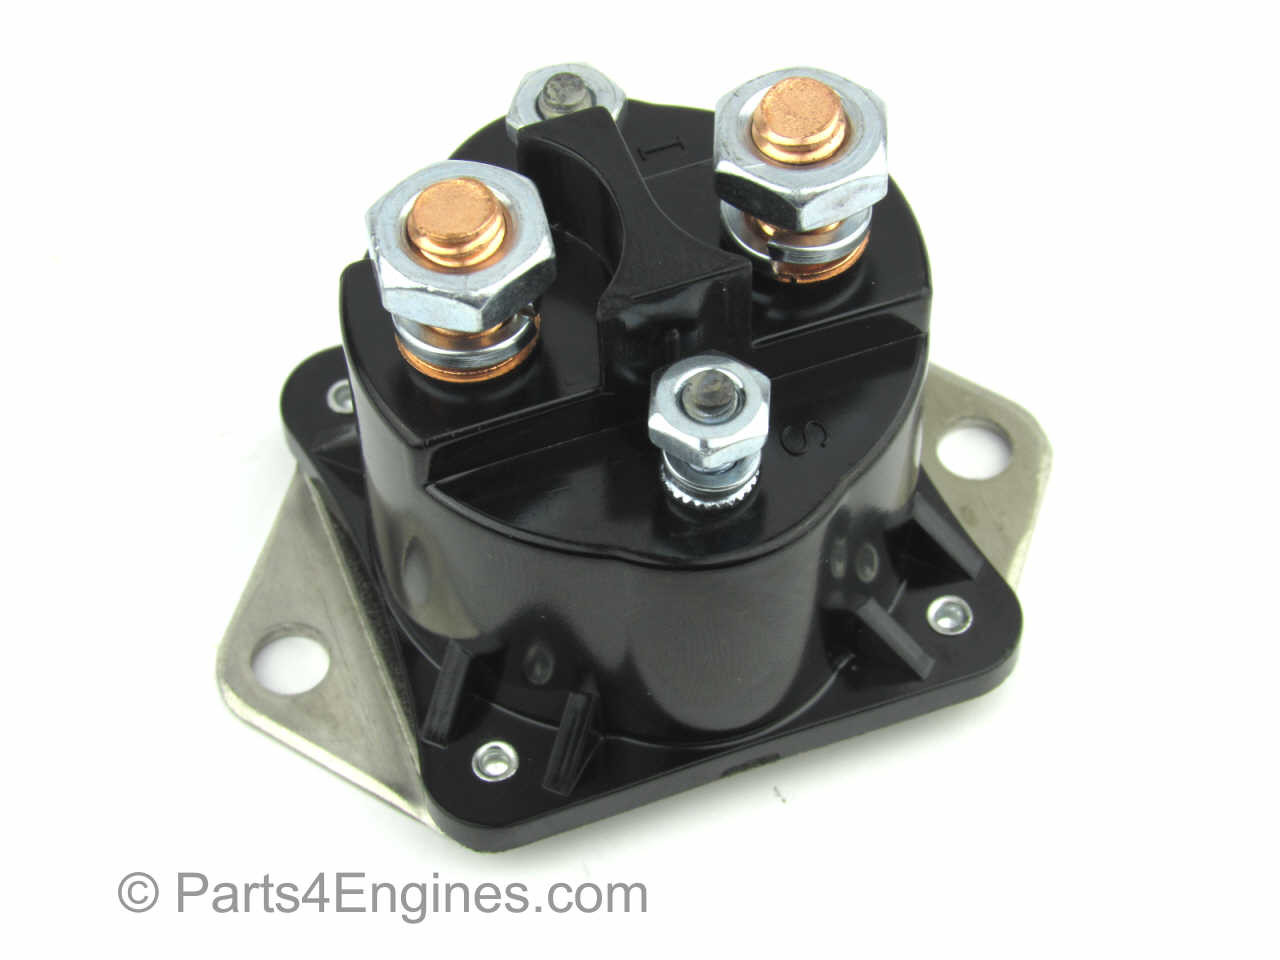 small resolution of perkins 4 108 starter marine solenoid 100 amp from parts4engines com